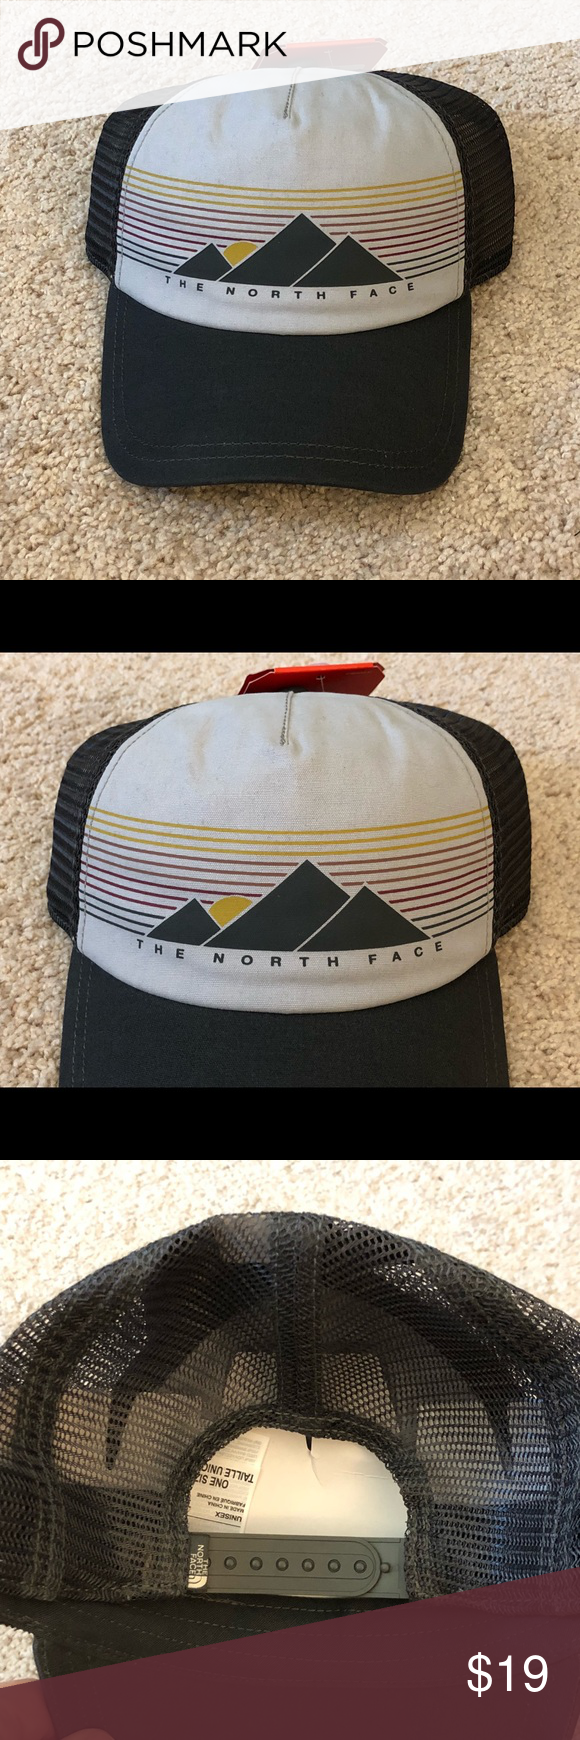 """a73e9ed8 Women's North Face Trucker Hat Brand New!! Women's The North Face Low Pro  Trucker Hat. This hat is in the color """"weathered black multi"""" which is a  white ..."""